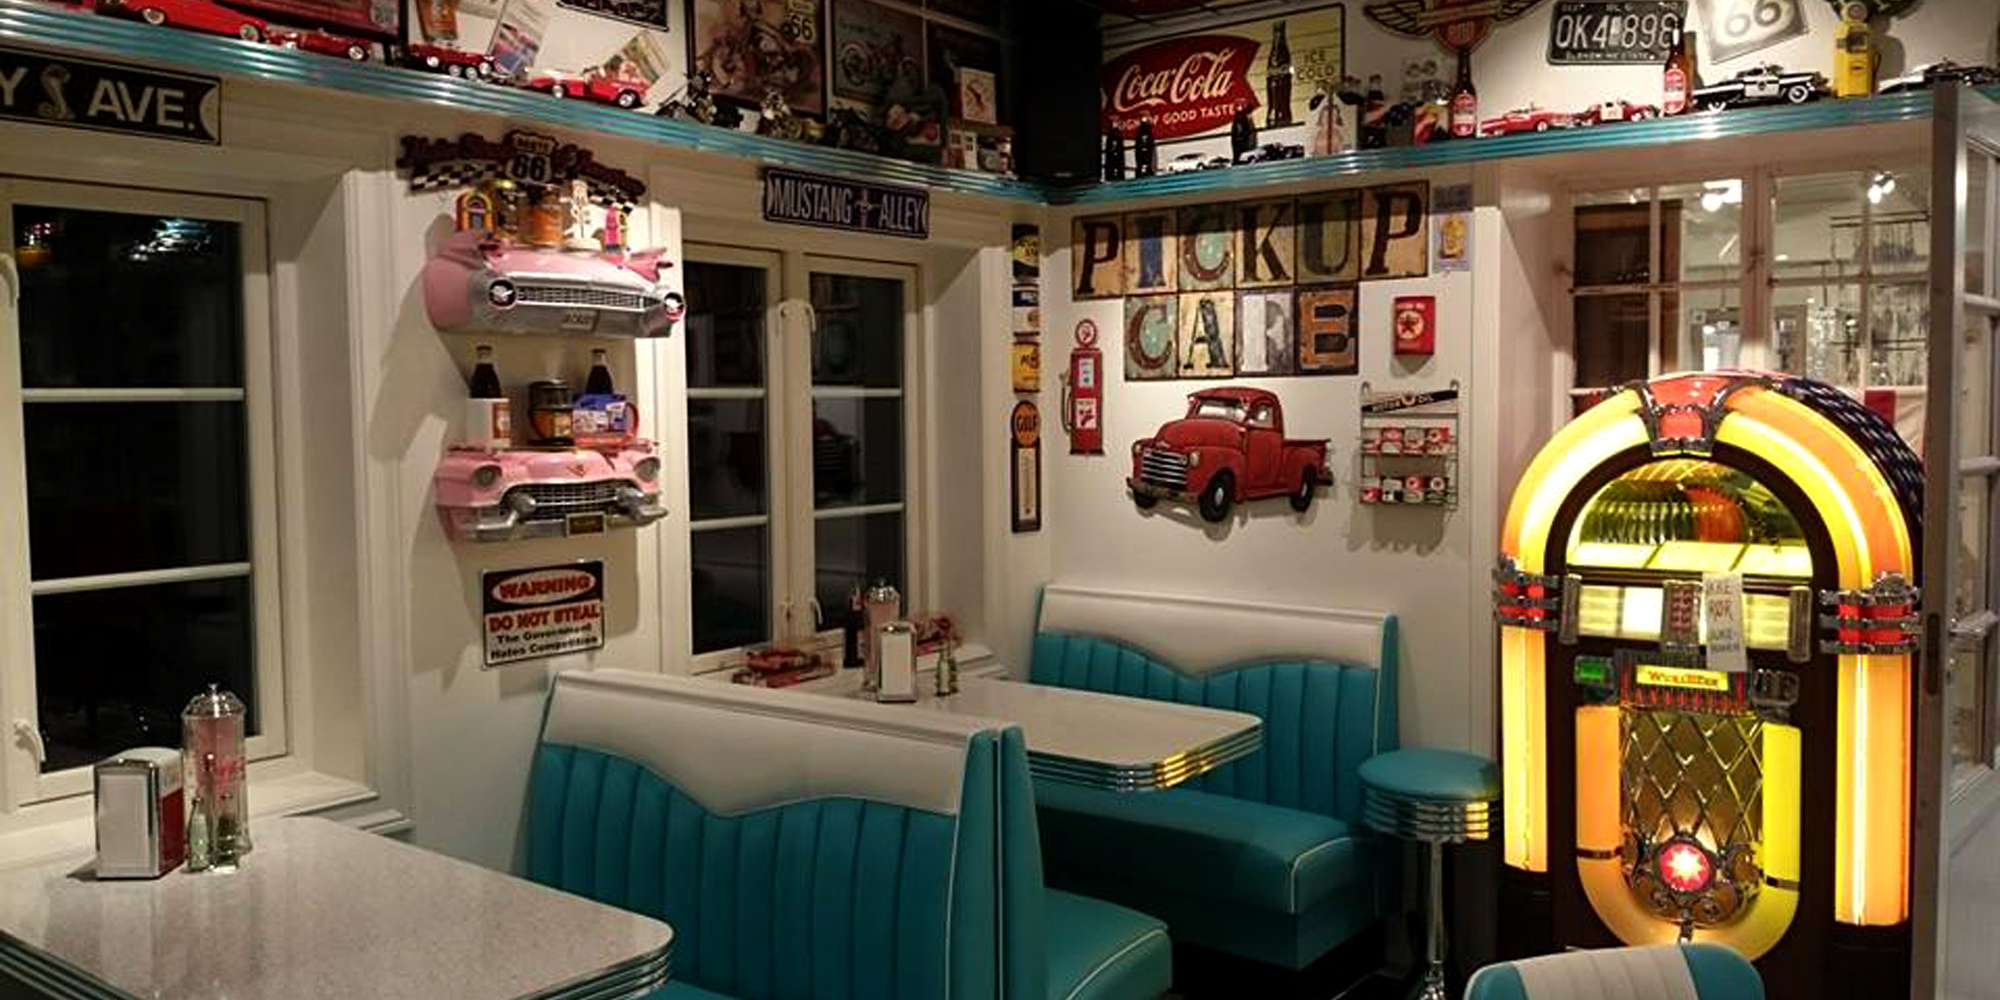 An American ispired 50s diner, Pick-up cafe atKortmans Candle Factory in Vuddudalen in Levanger municipality. Copyright: Kortmans Lysfabrikk